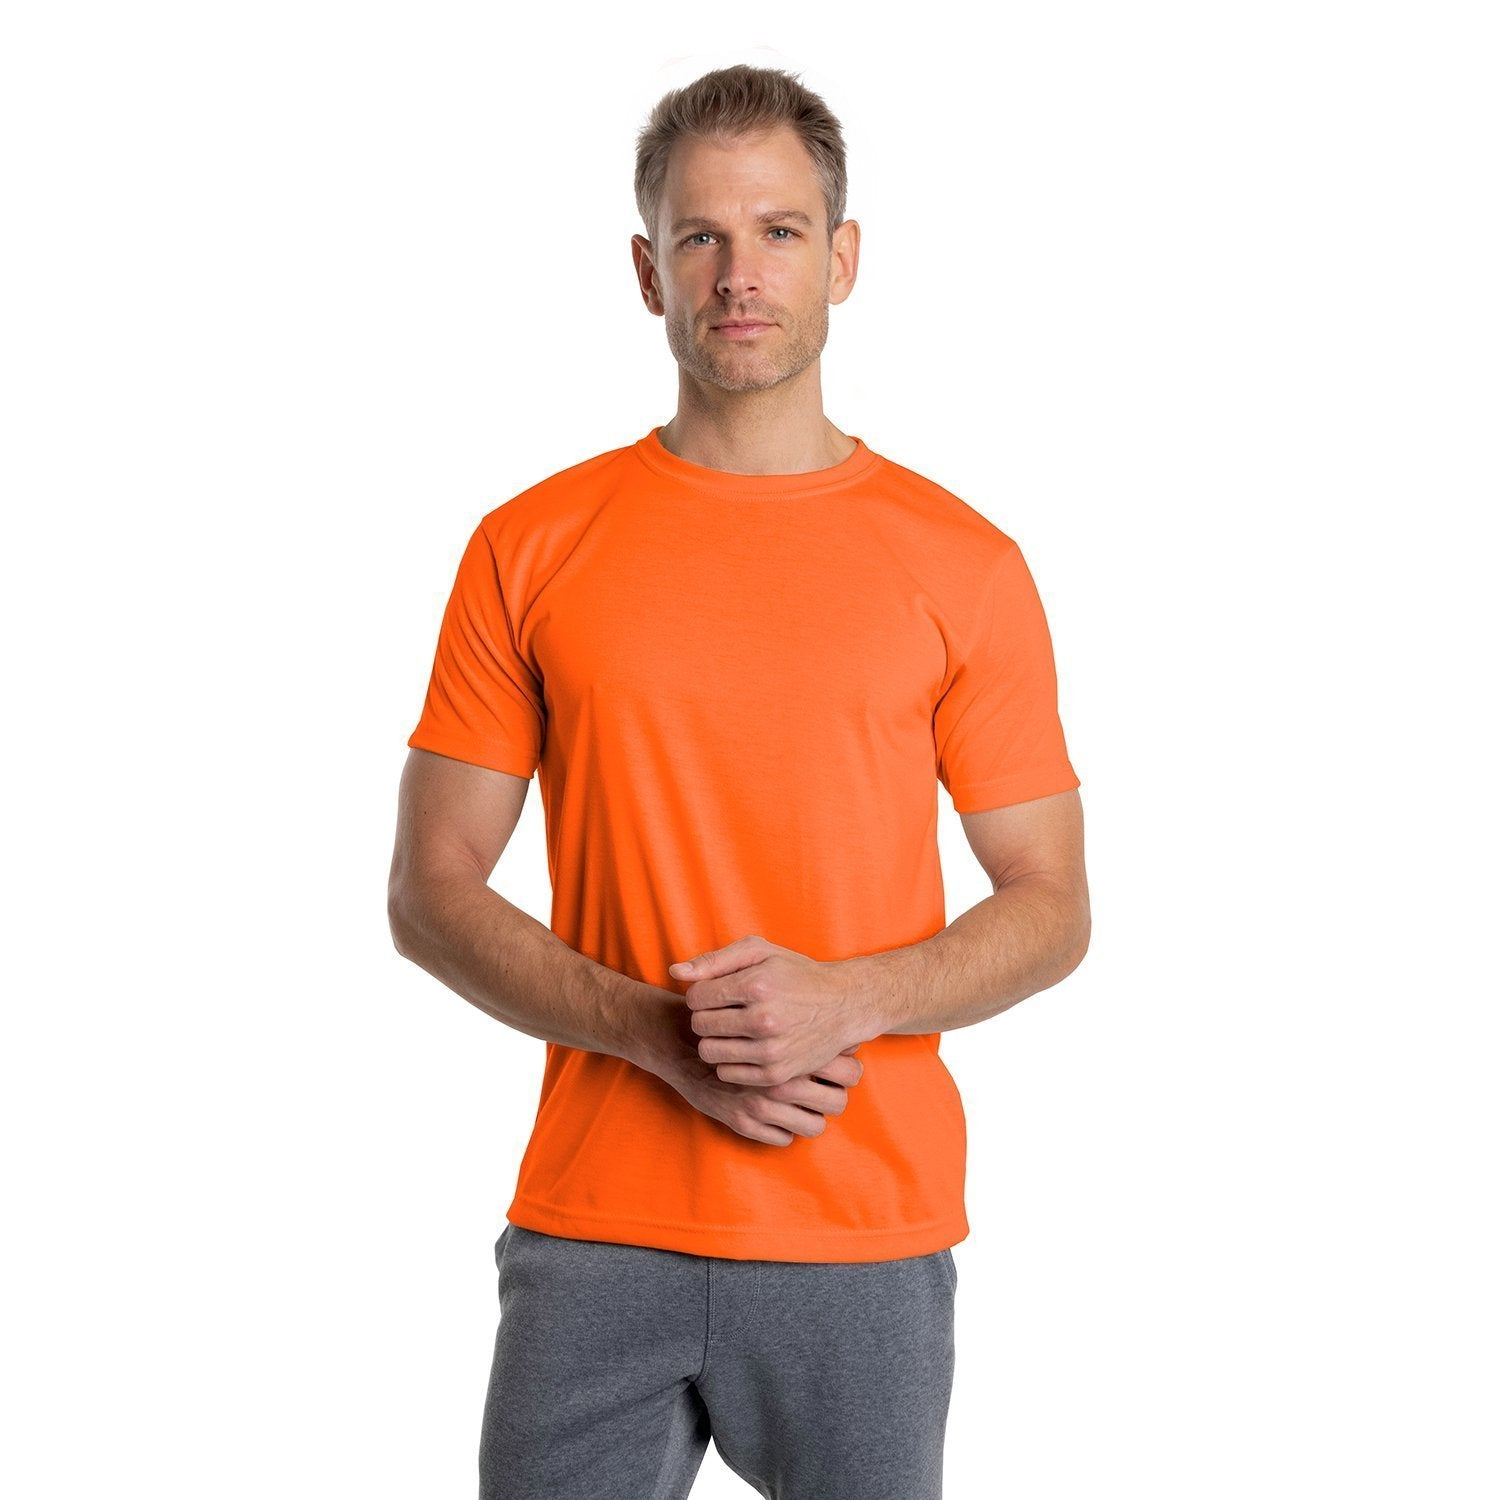 A1SJBBSO Basic Performance T-Shirt - Safety Orange